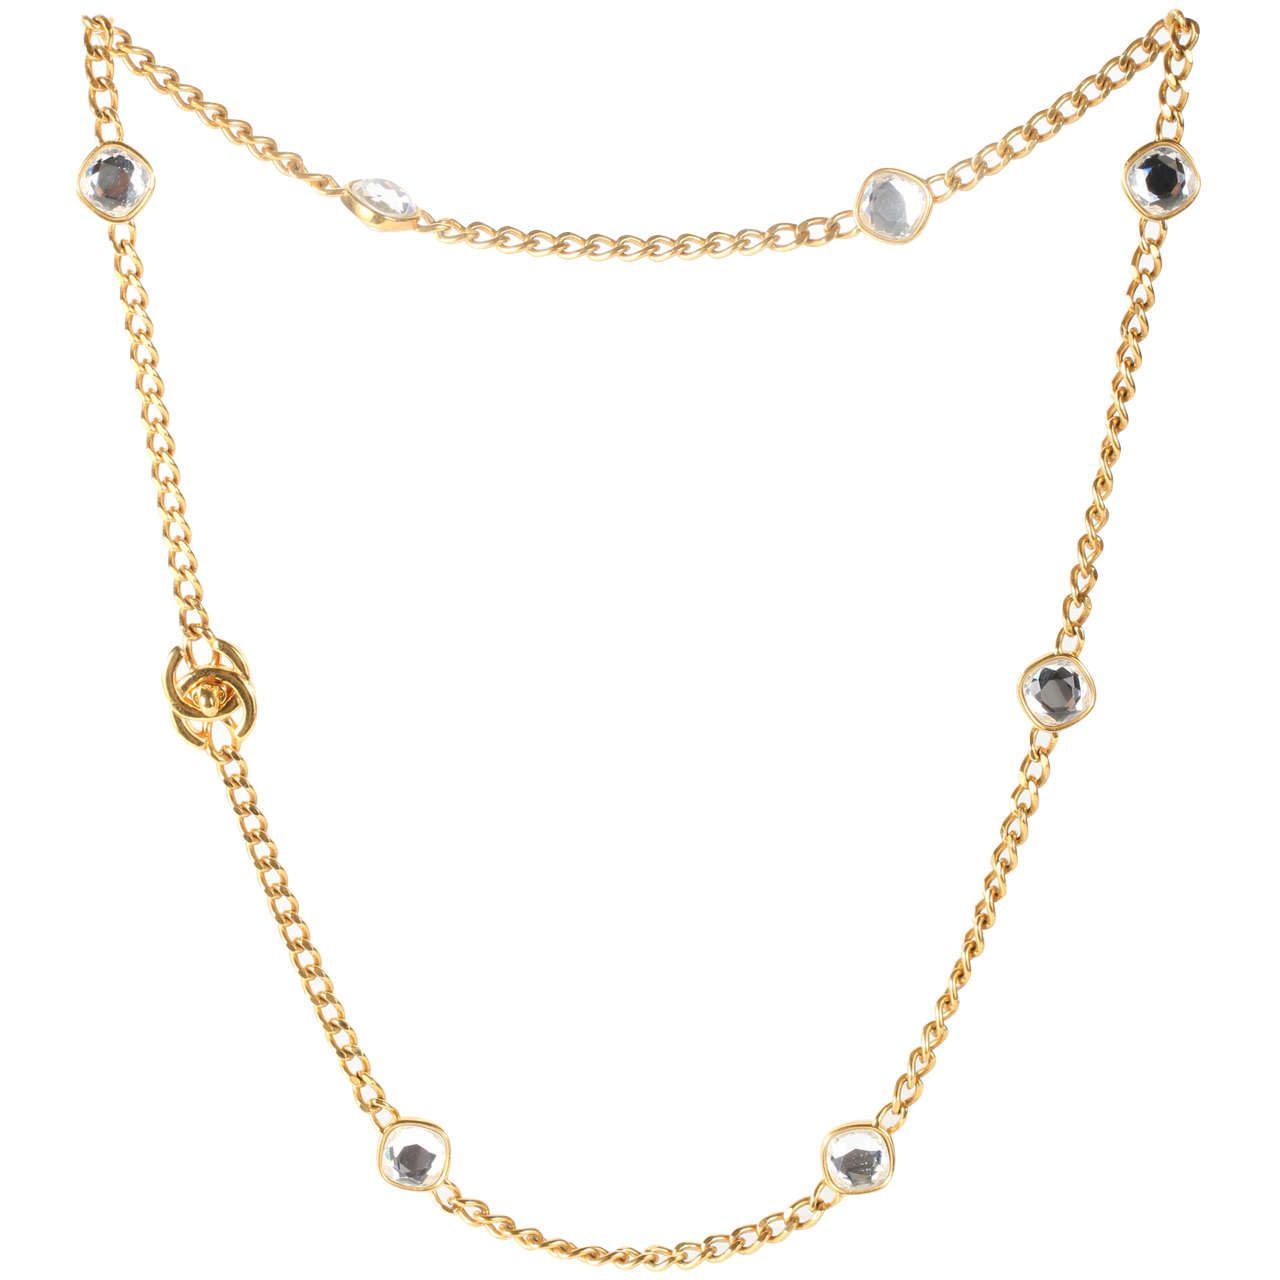 default metal gold en costume products fashion jewelry chains crystal long chanel pearly packshot ww necklace necklaces strass glass pearls white